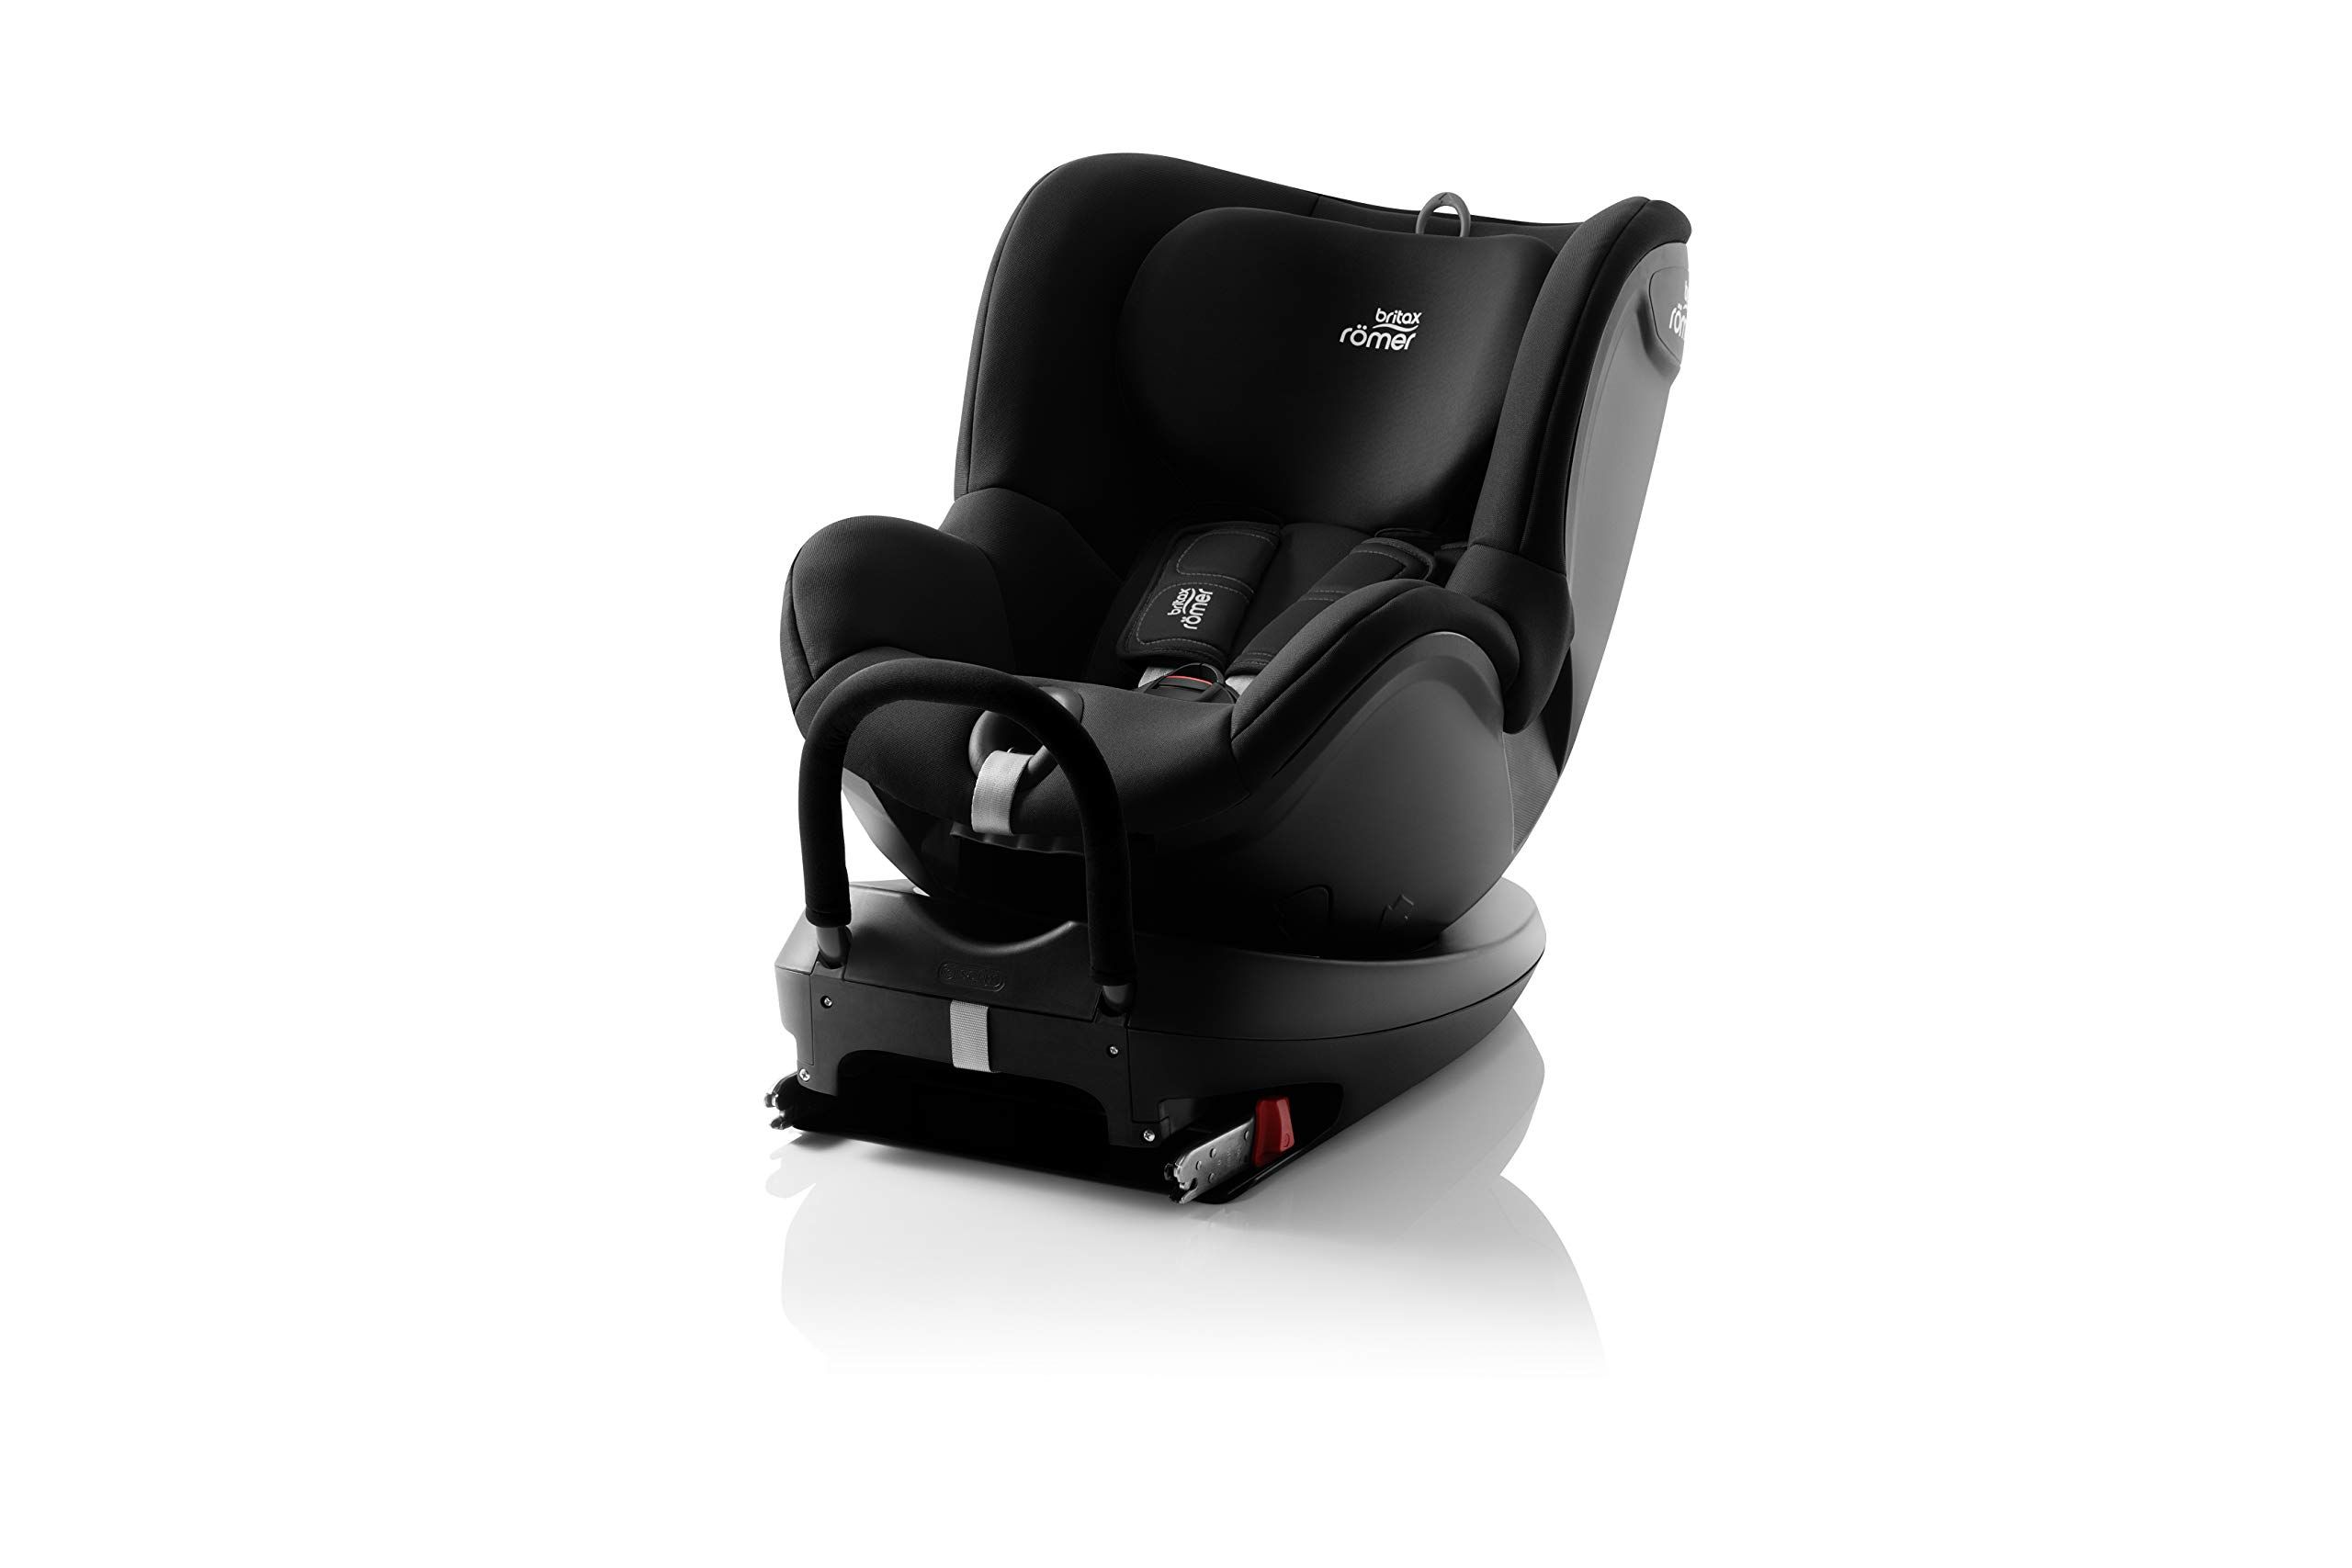 Britax Römer DUALFIX² R Group 0+1 (Birth-18 kg) Car Seat, Cosmos Black Britax Römer Intuitive 360° rotation for rearward and forward facing usage Easy entry with 90 degree rotation to the open door for easy placement of the child Extended rearward facing travel with more leg space thanks to shorter rebound bar 1